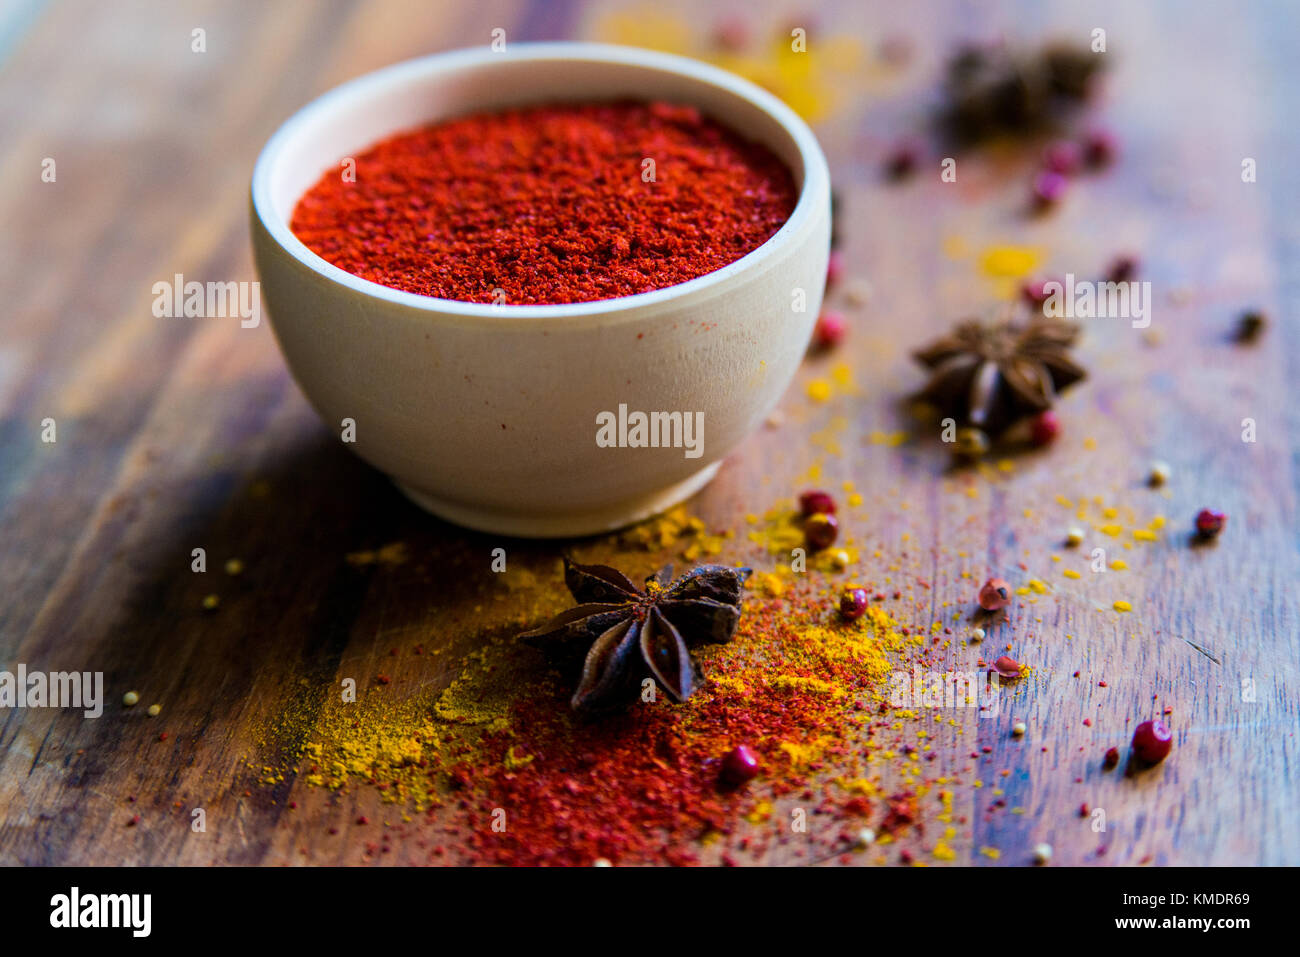 Paprika powder in wooden bowl with anise - Stock Image